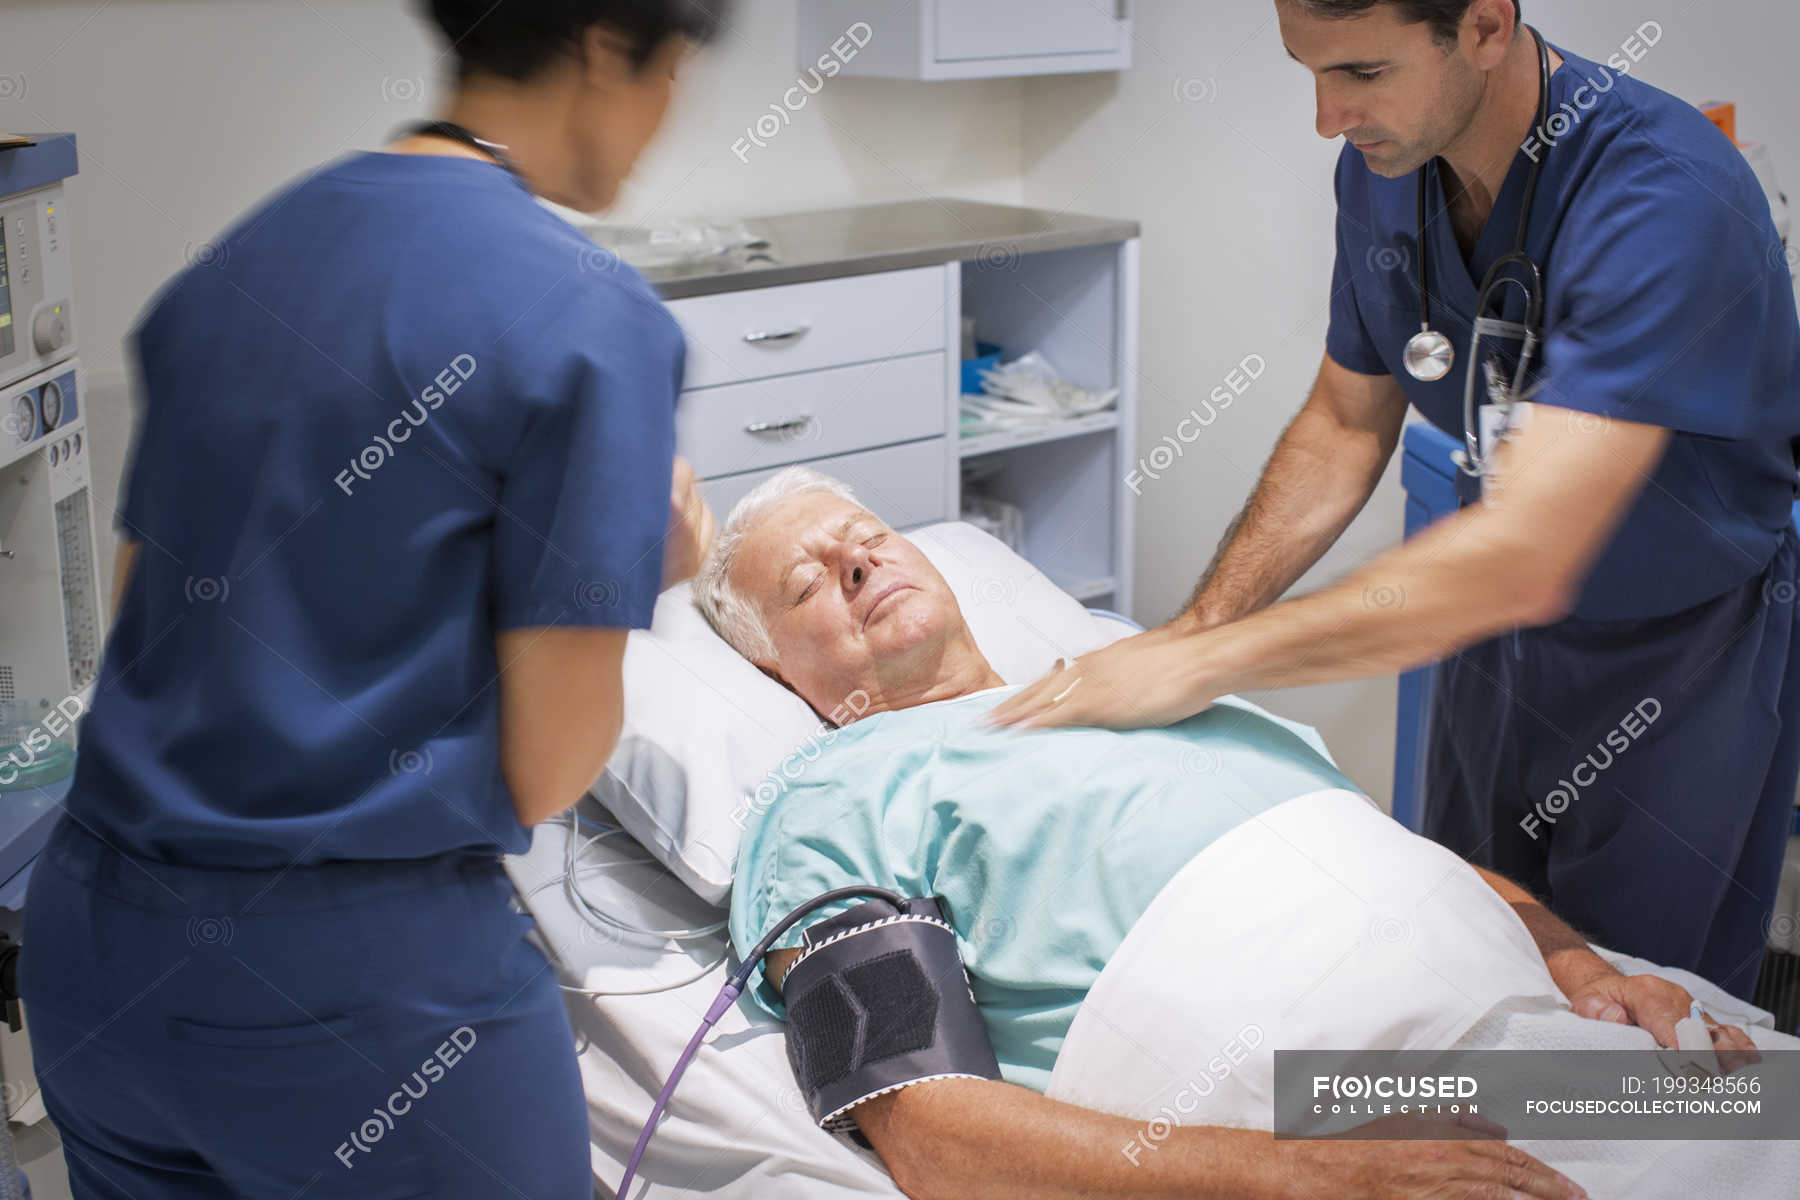 Doctor performing CPR on unconscious patient in emergency